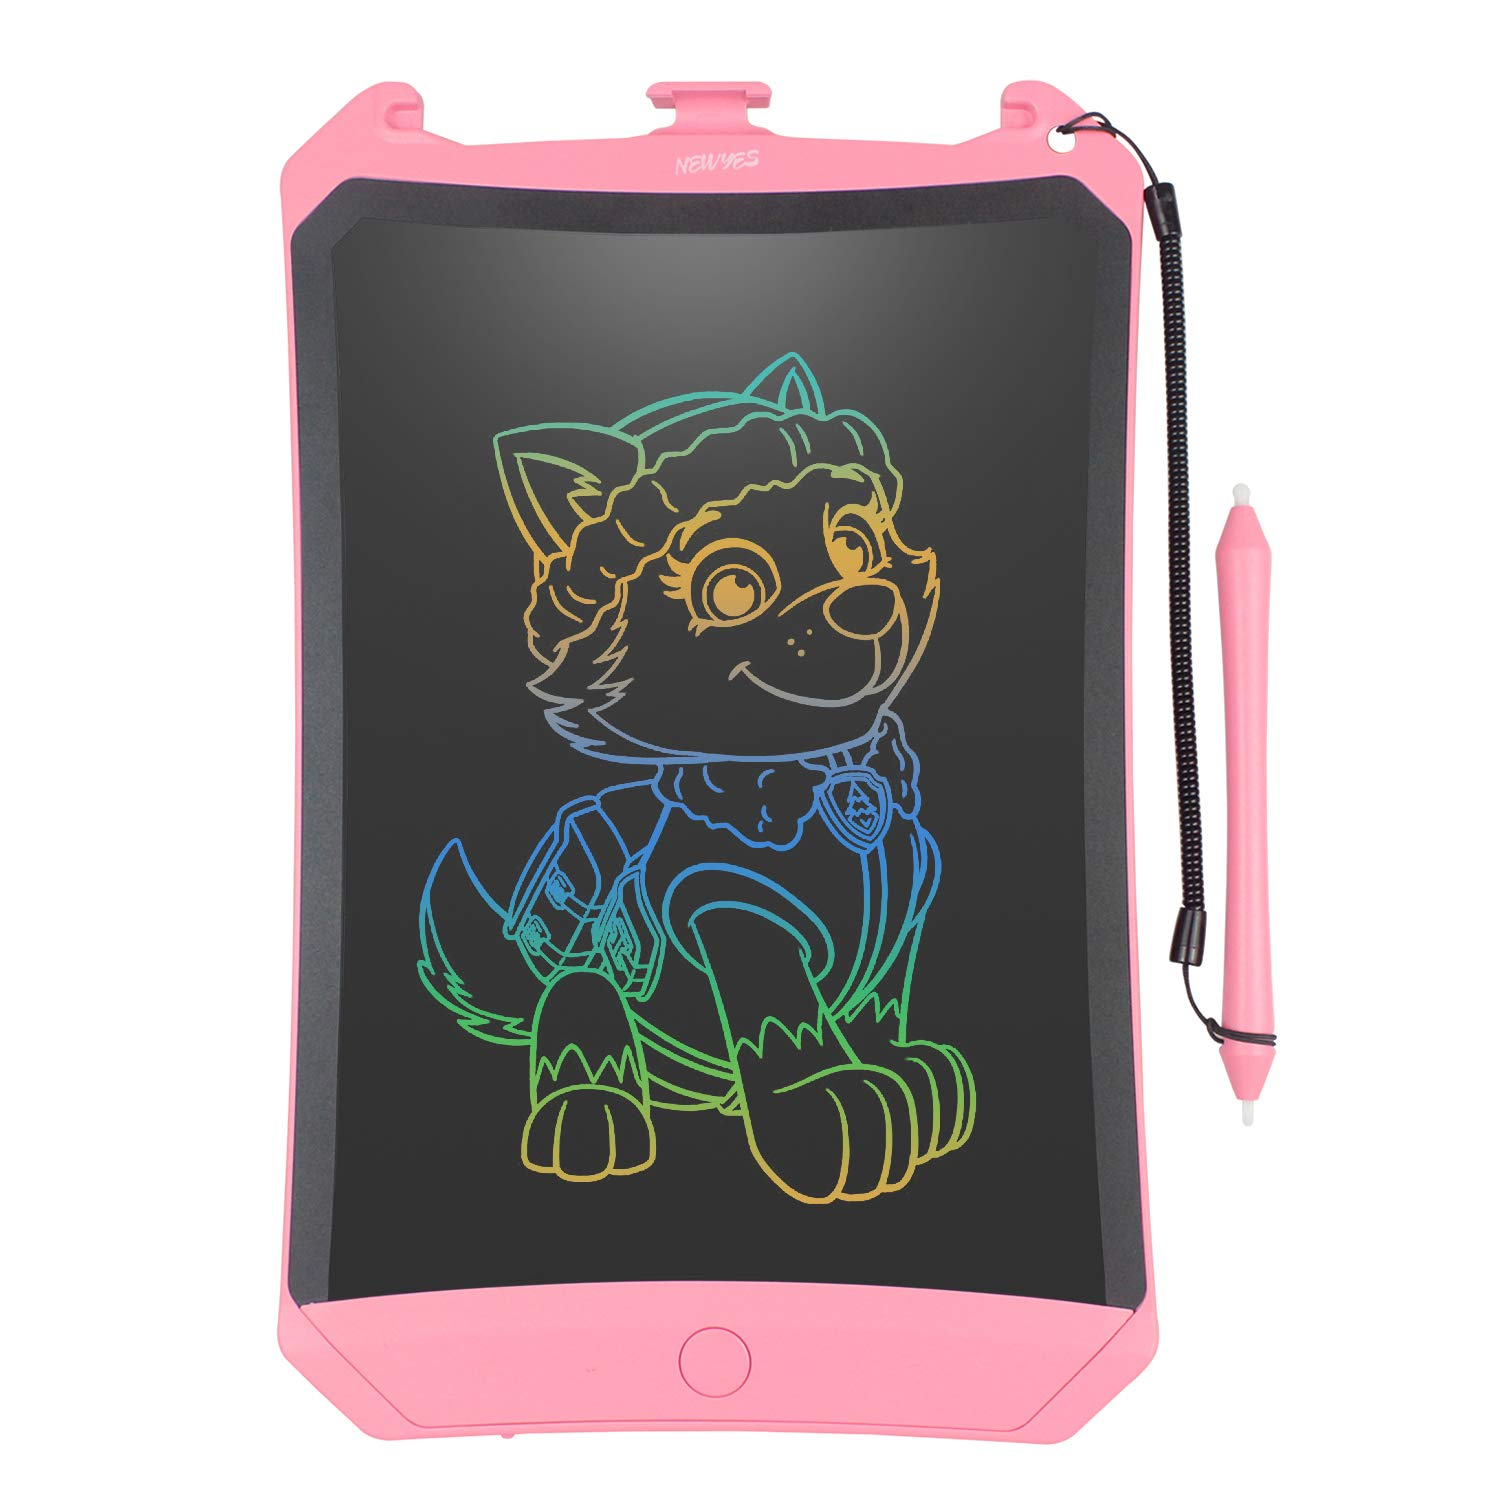 WOBEECO LCD Writing Tablet, 2019 Upgraded Colorful Screen 8 5 Inch  Electronic Writing Board Doodle and Scribble Board Magnetic MeMO Notes  Comes with 1